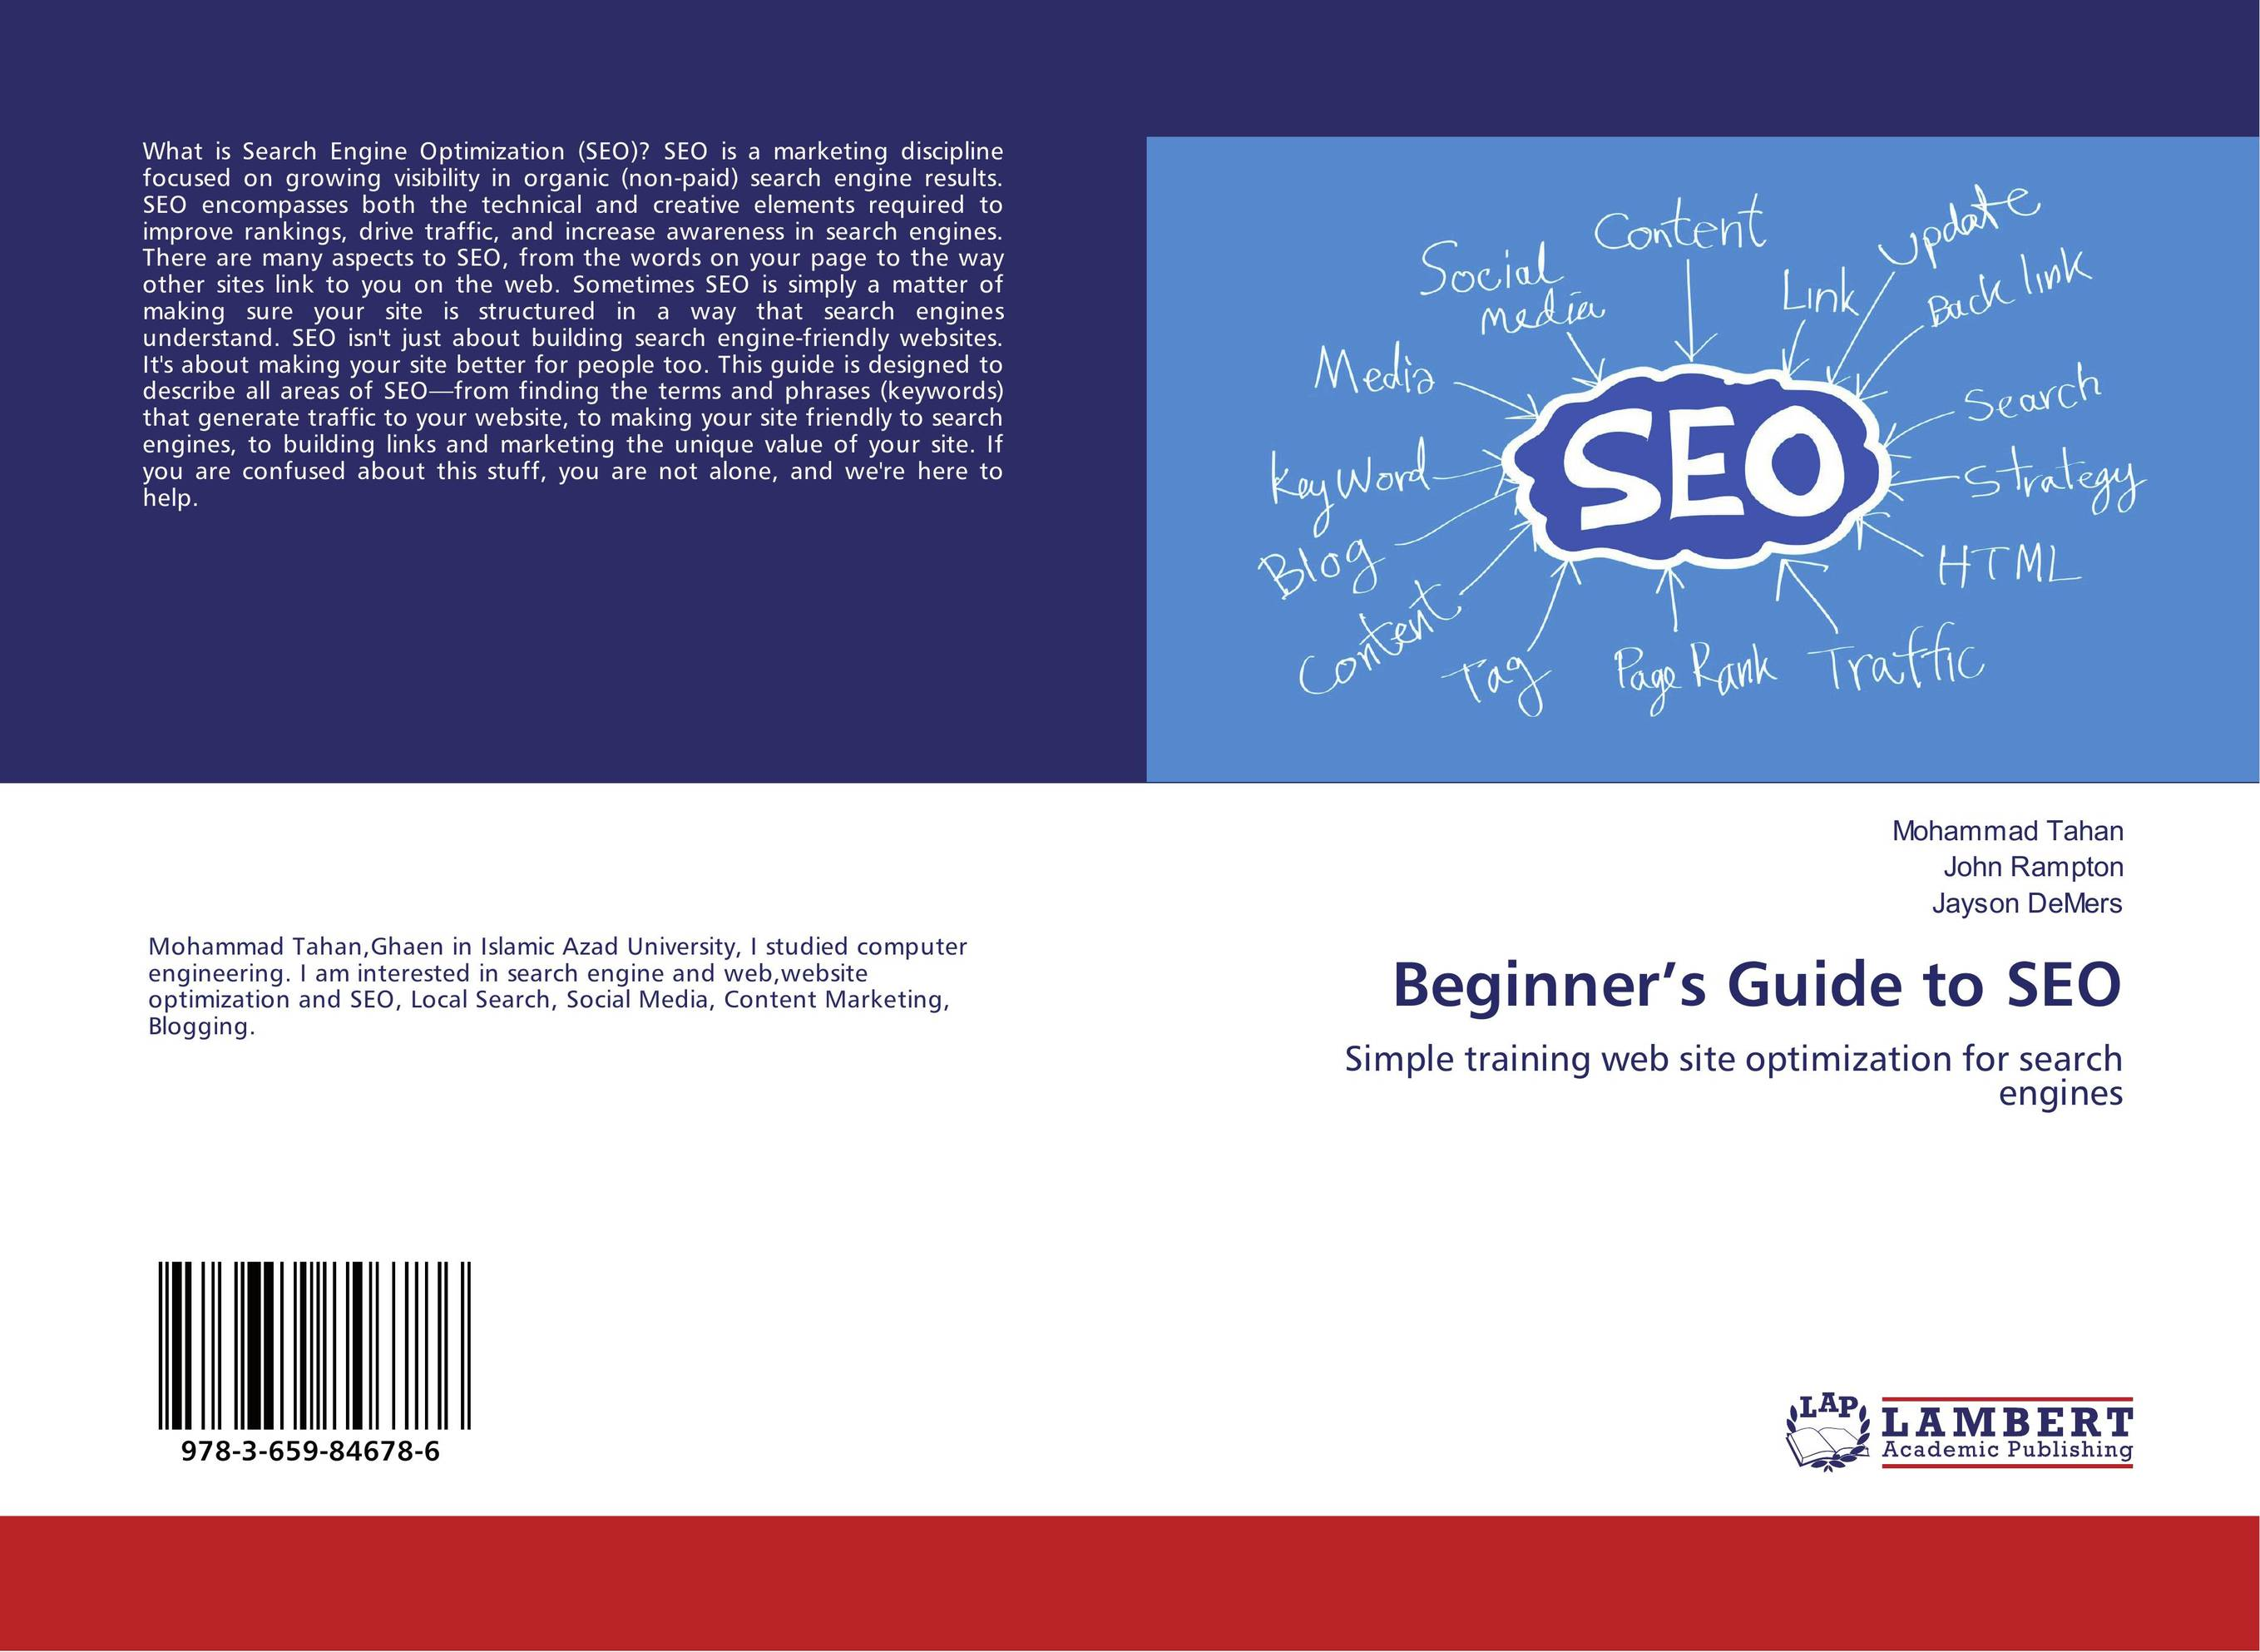 Beginner's Guide to SEO bruce clay search engine optimization all in one for dummies